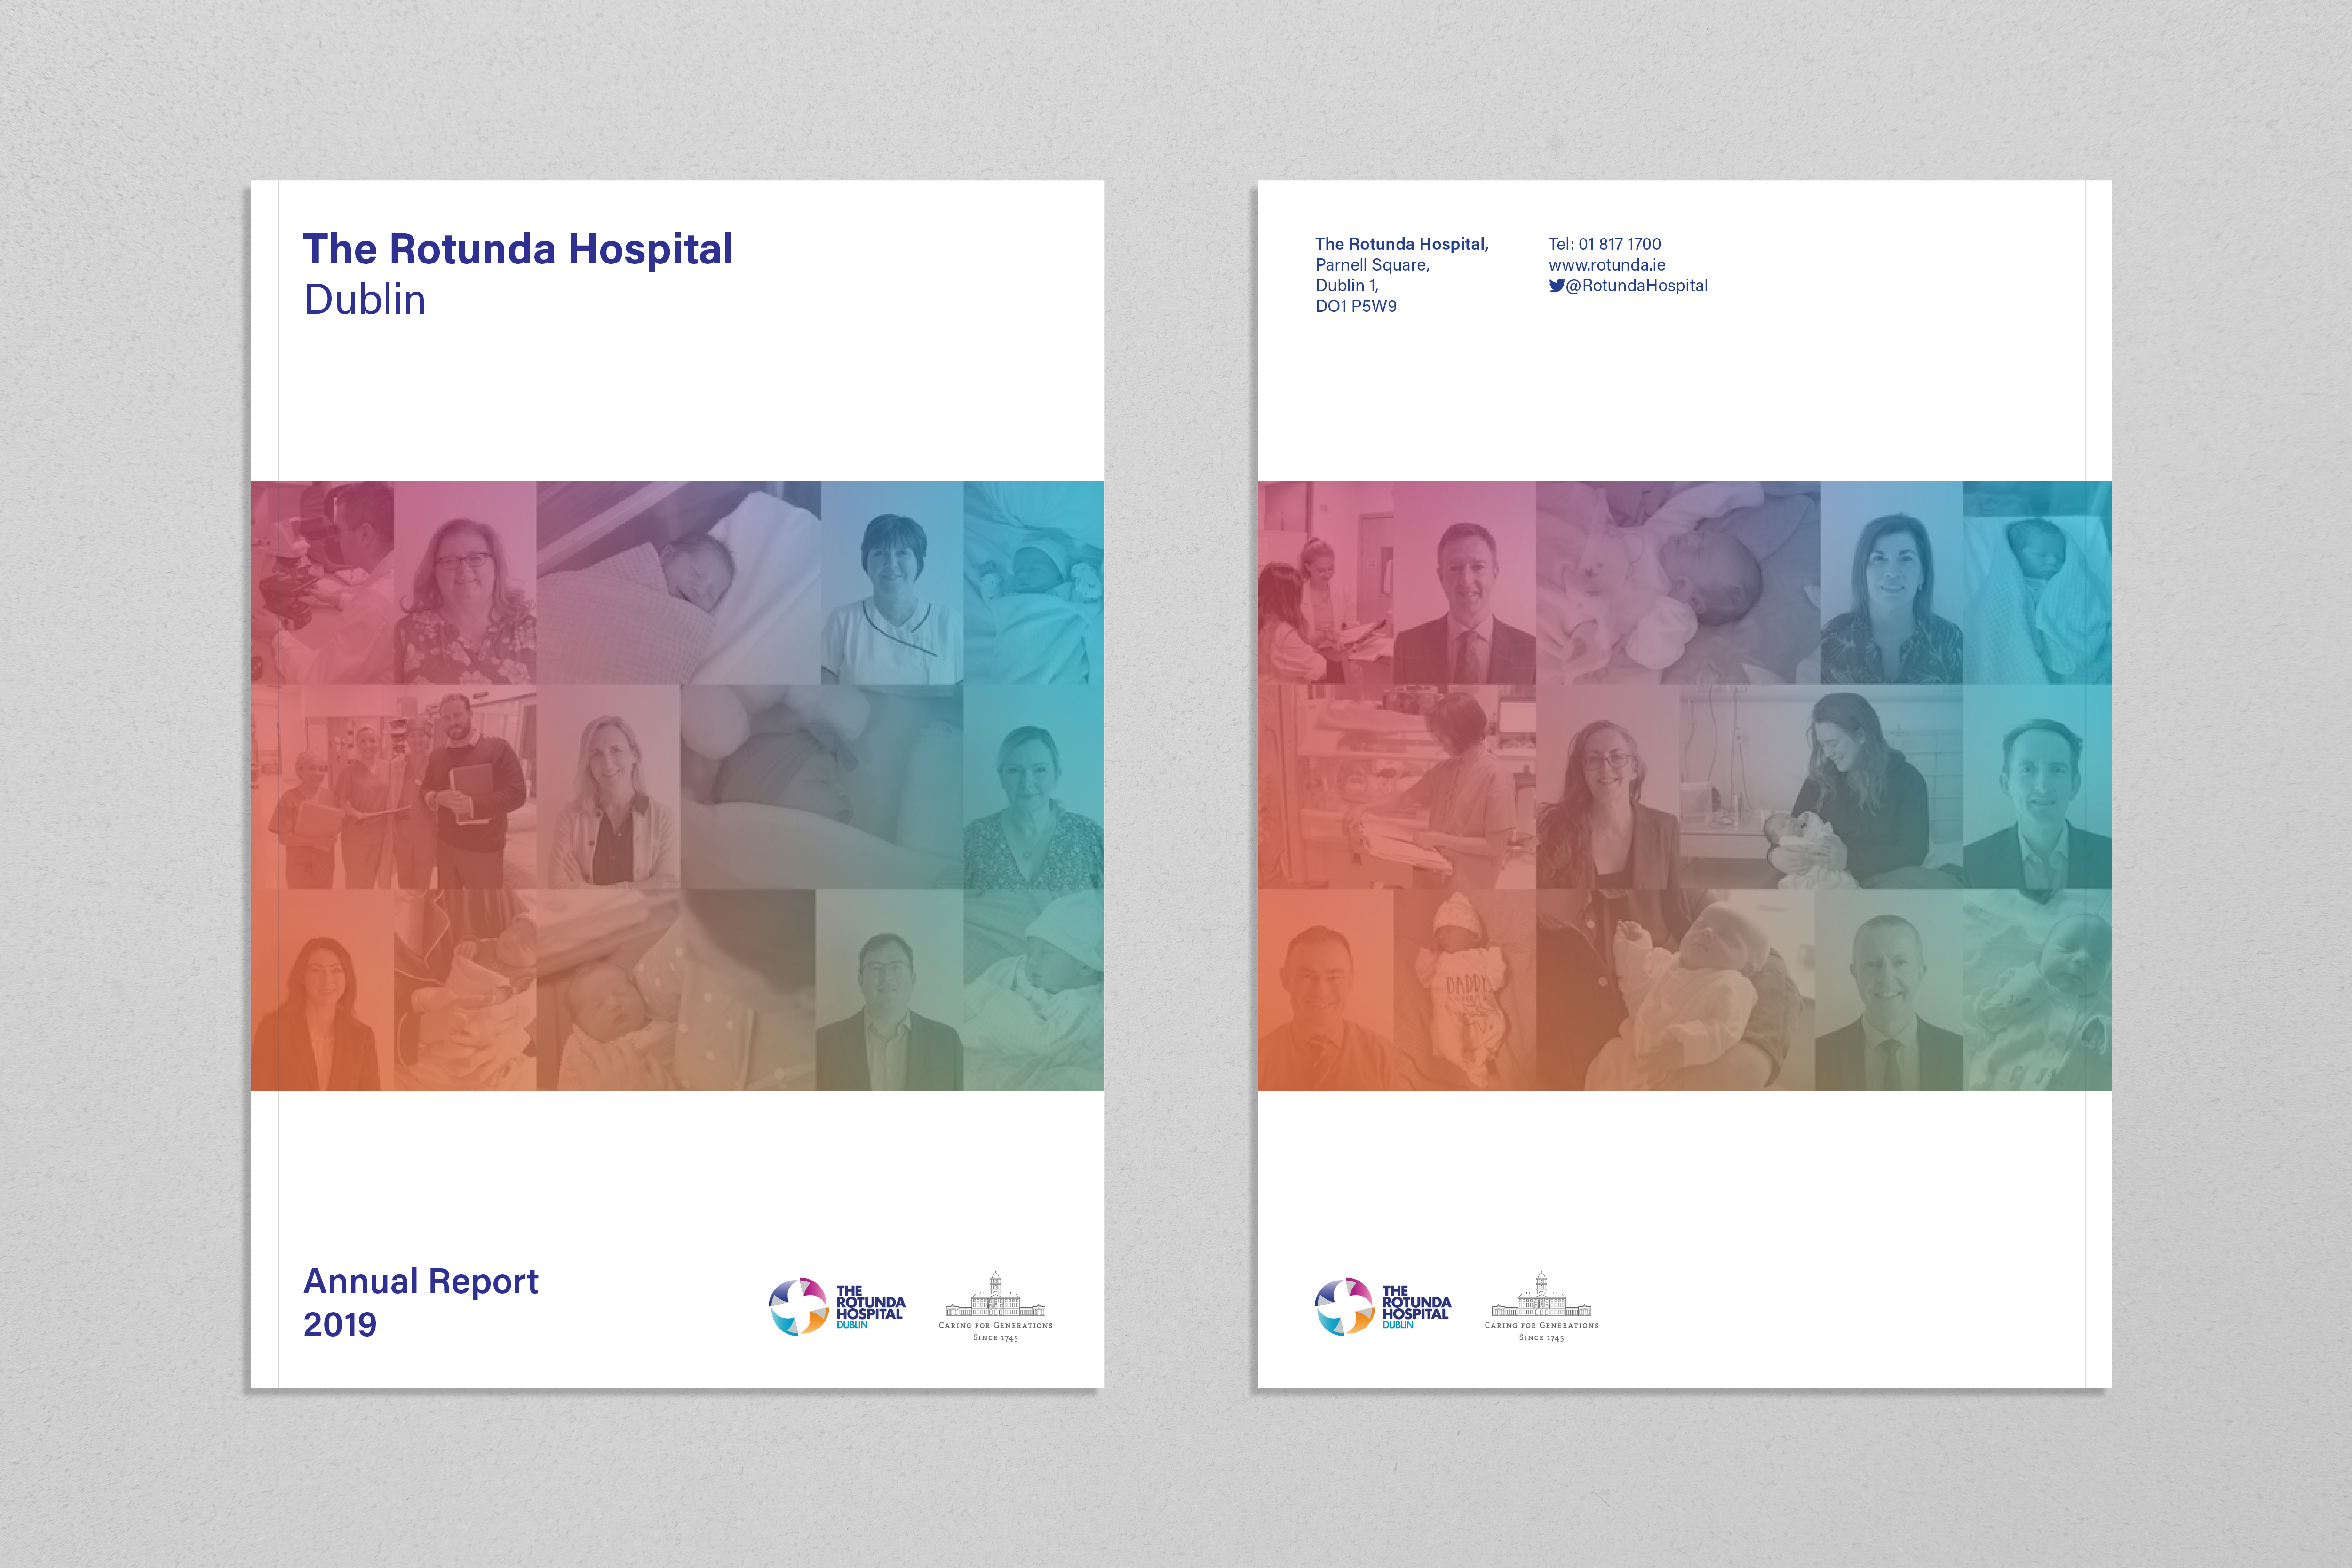 Cover image: The Rotunda Hospital Annual Report 2019